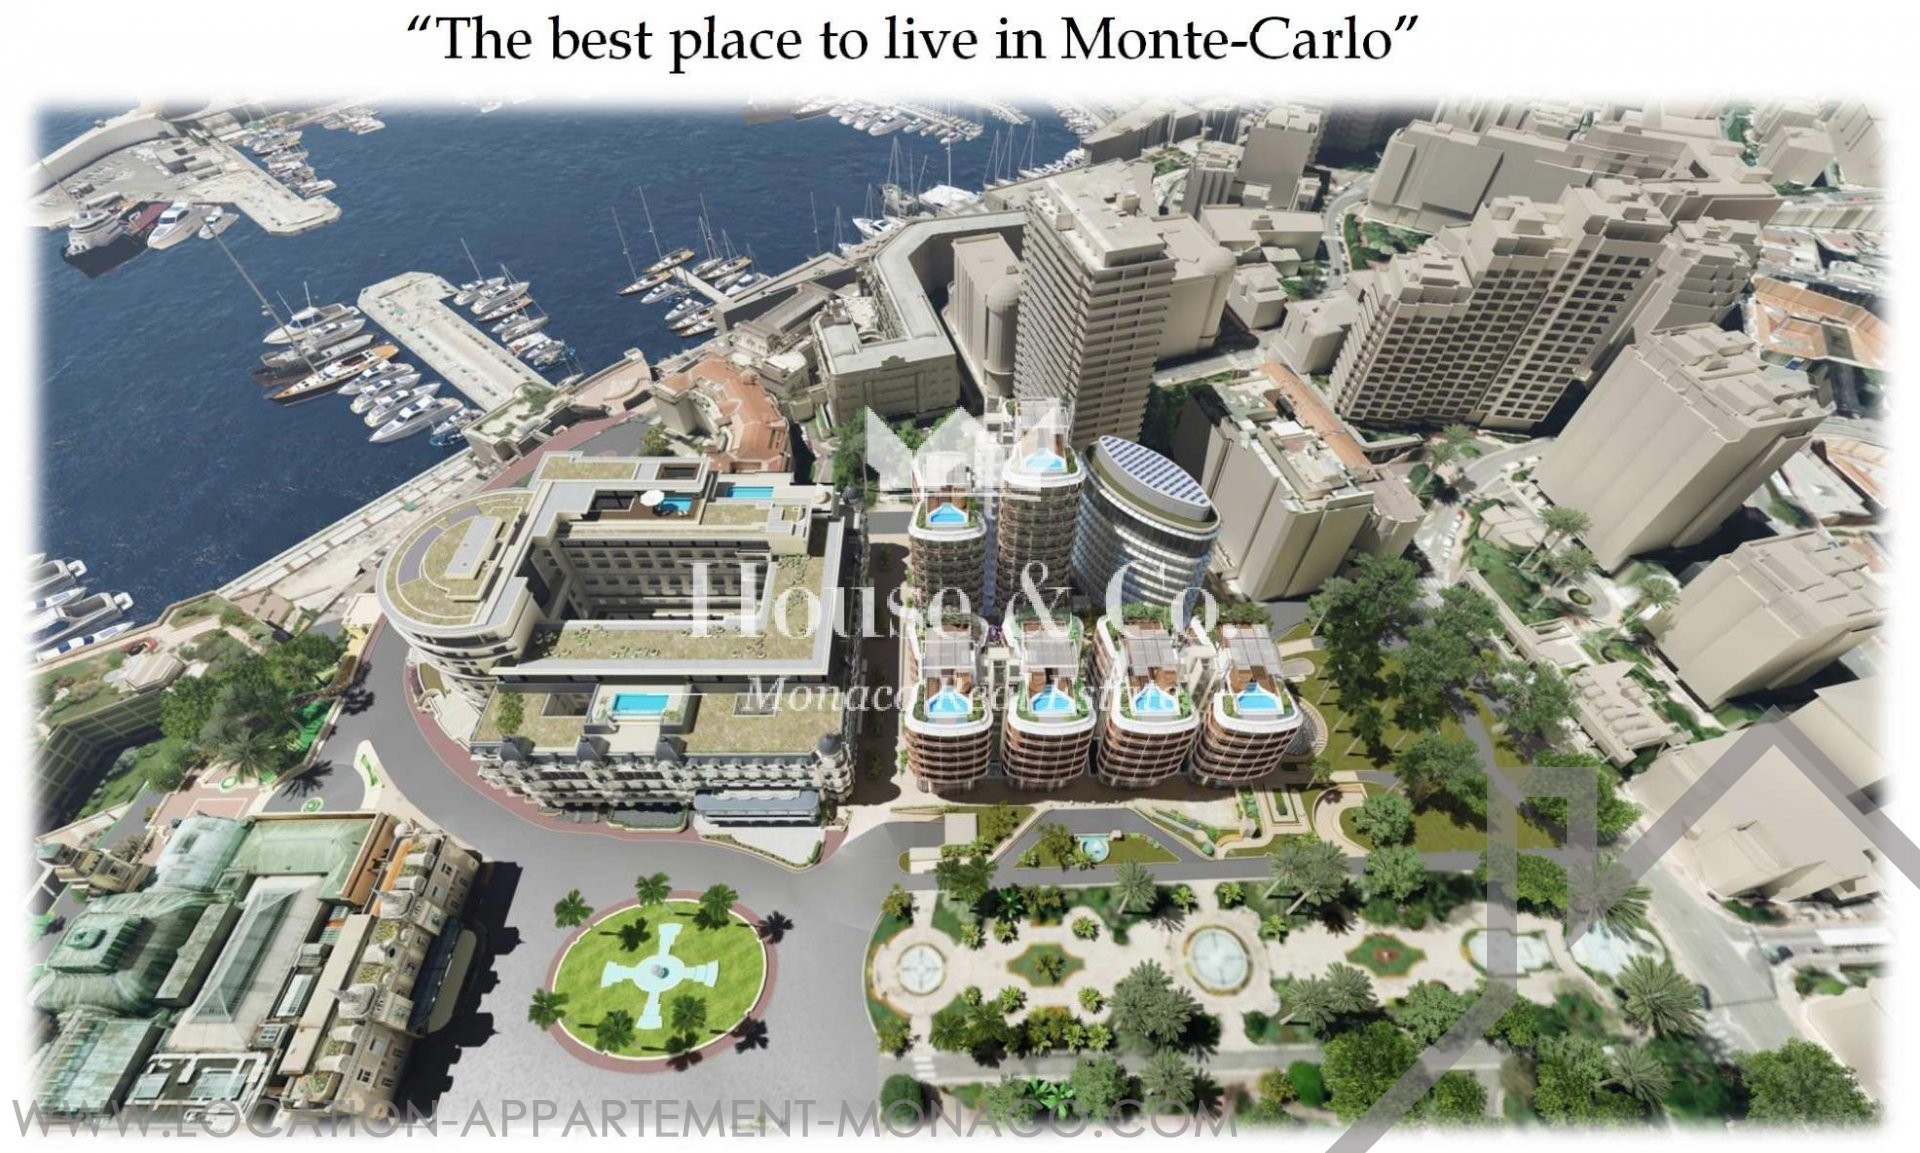 APARTMENTS IN HOTEL RESIDENCE FOR RENT - Appartamenti da affittare a MonteCarlo